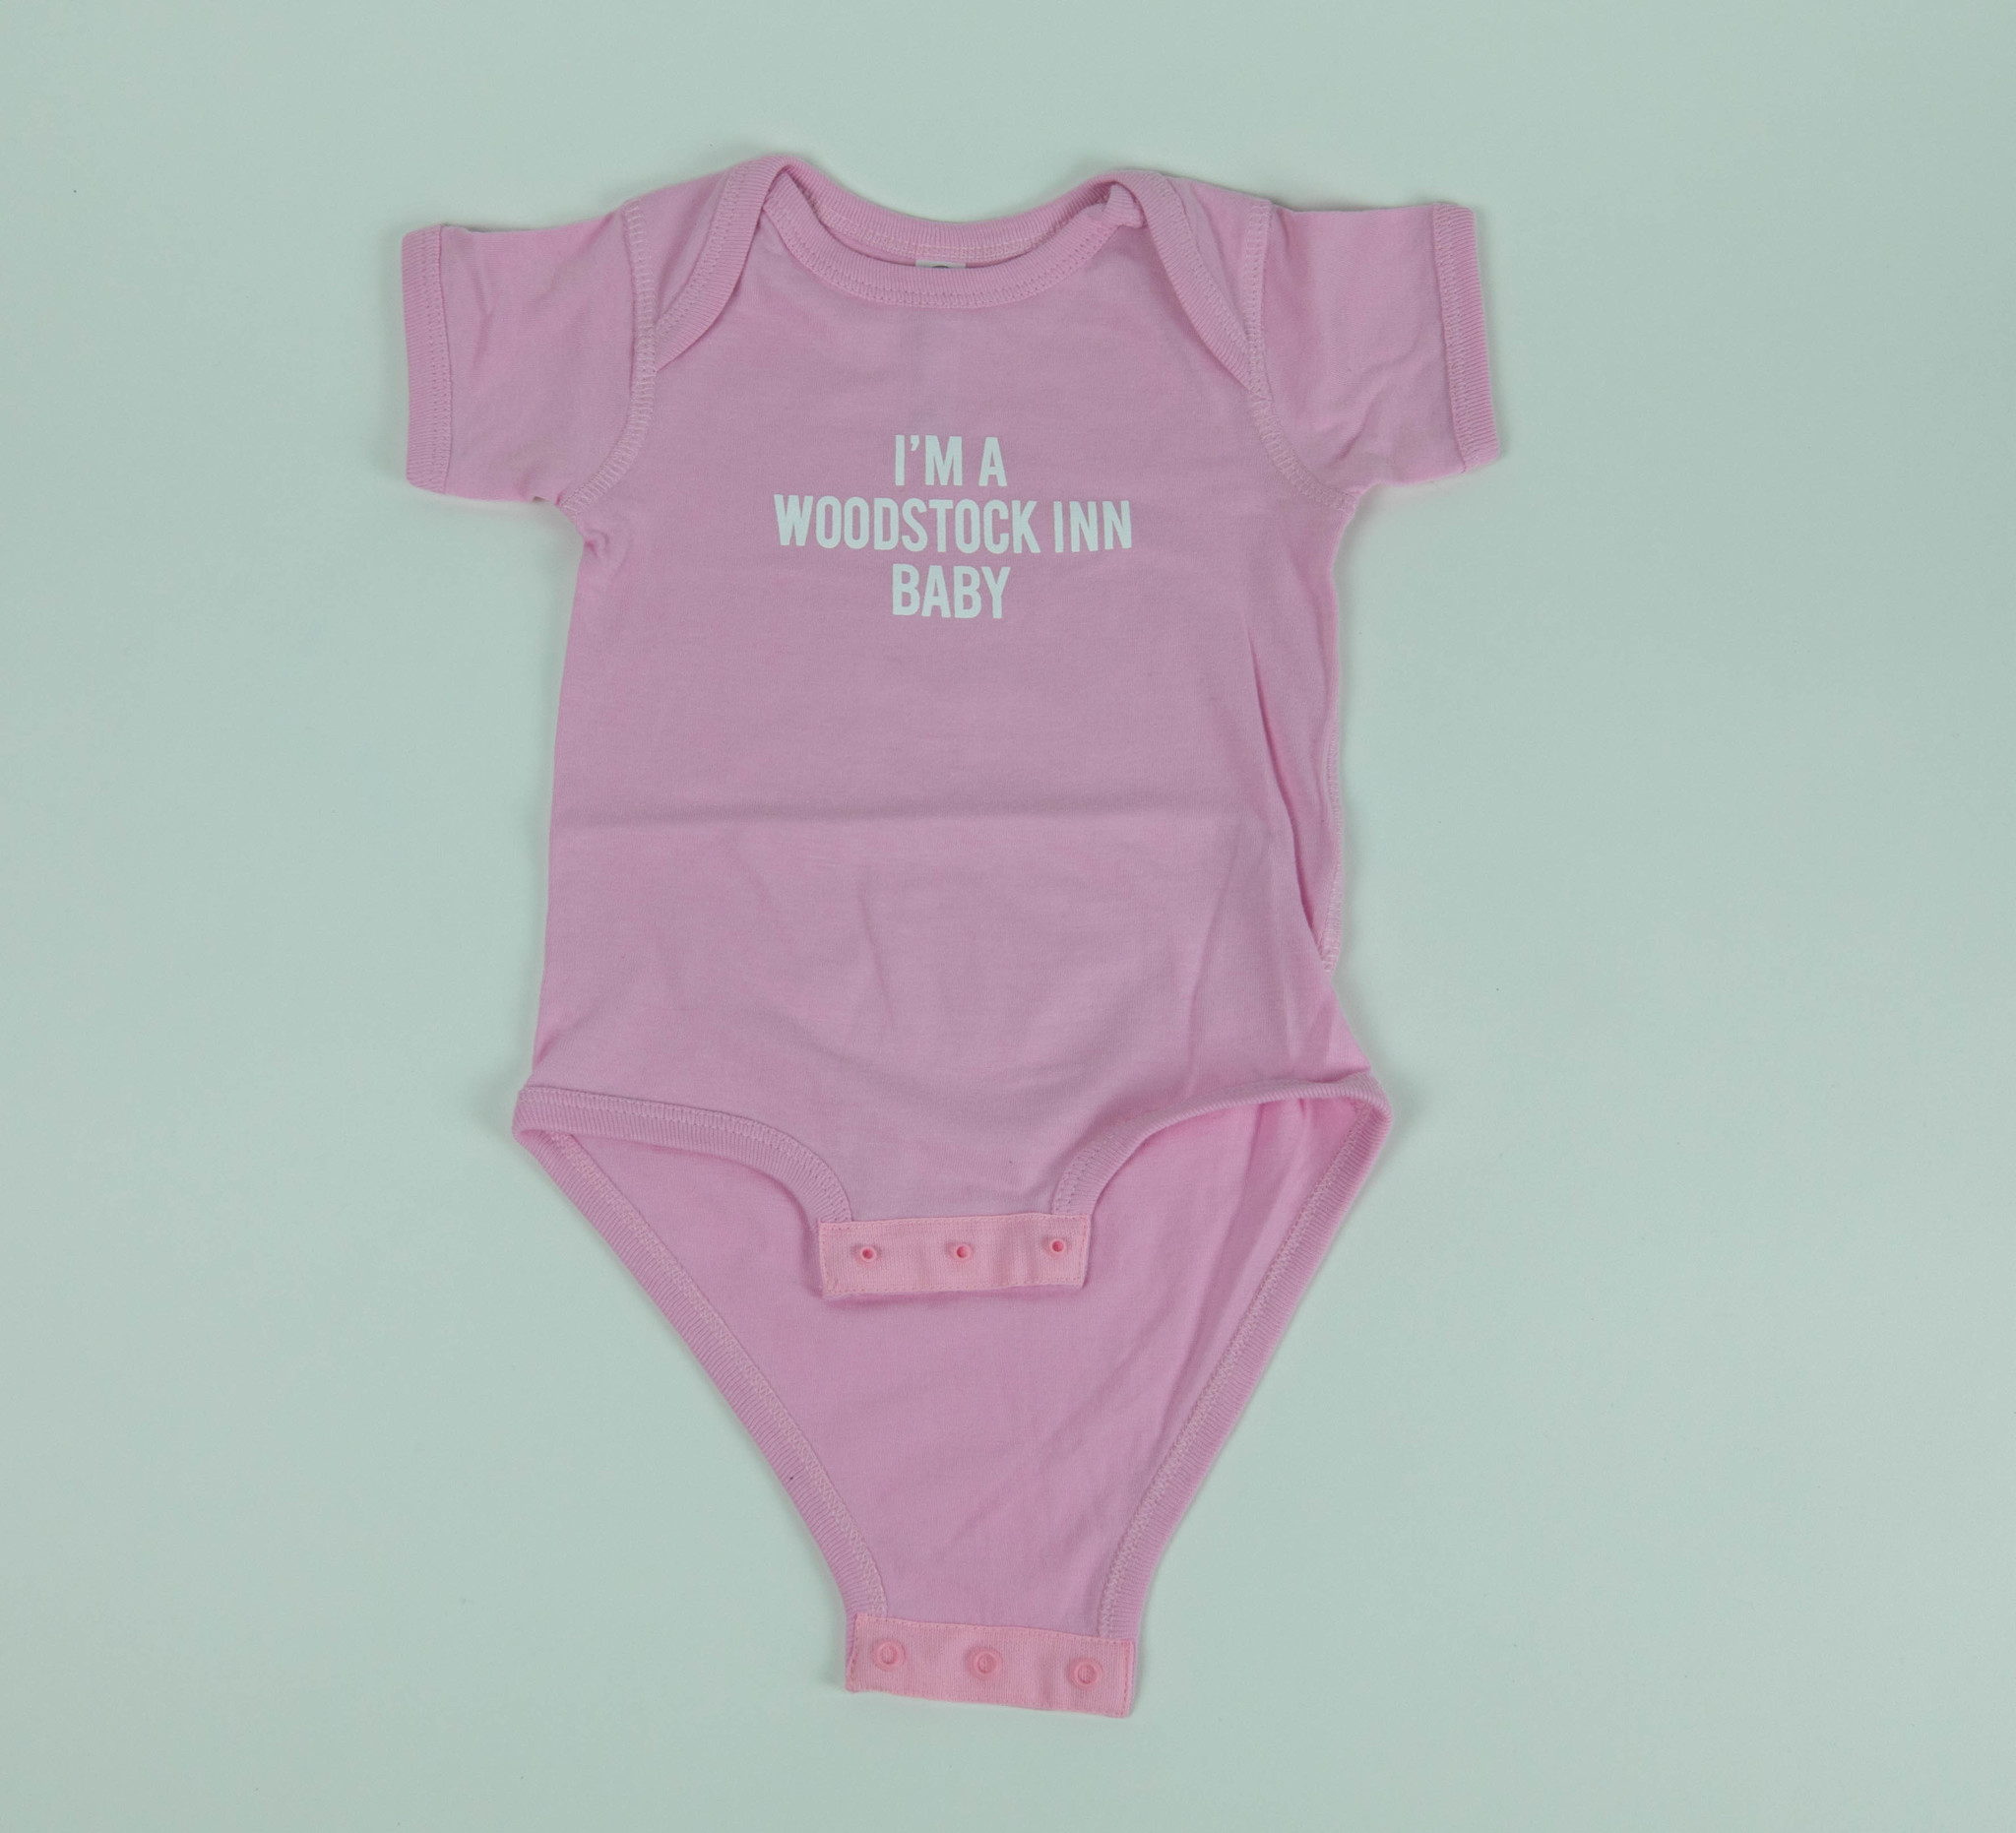 Baby Infant  Onesies all sizes